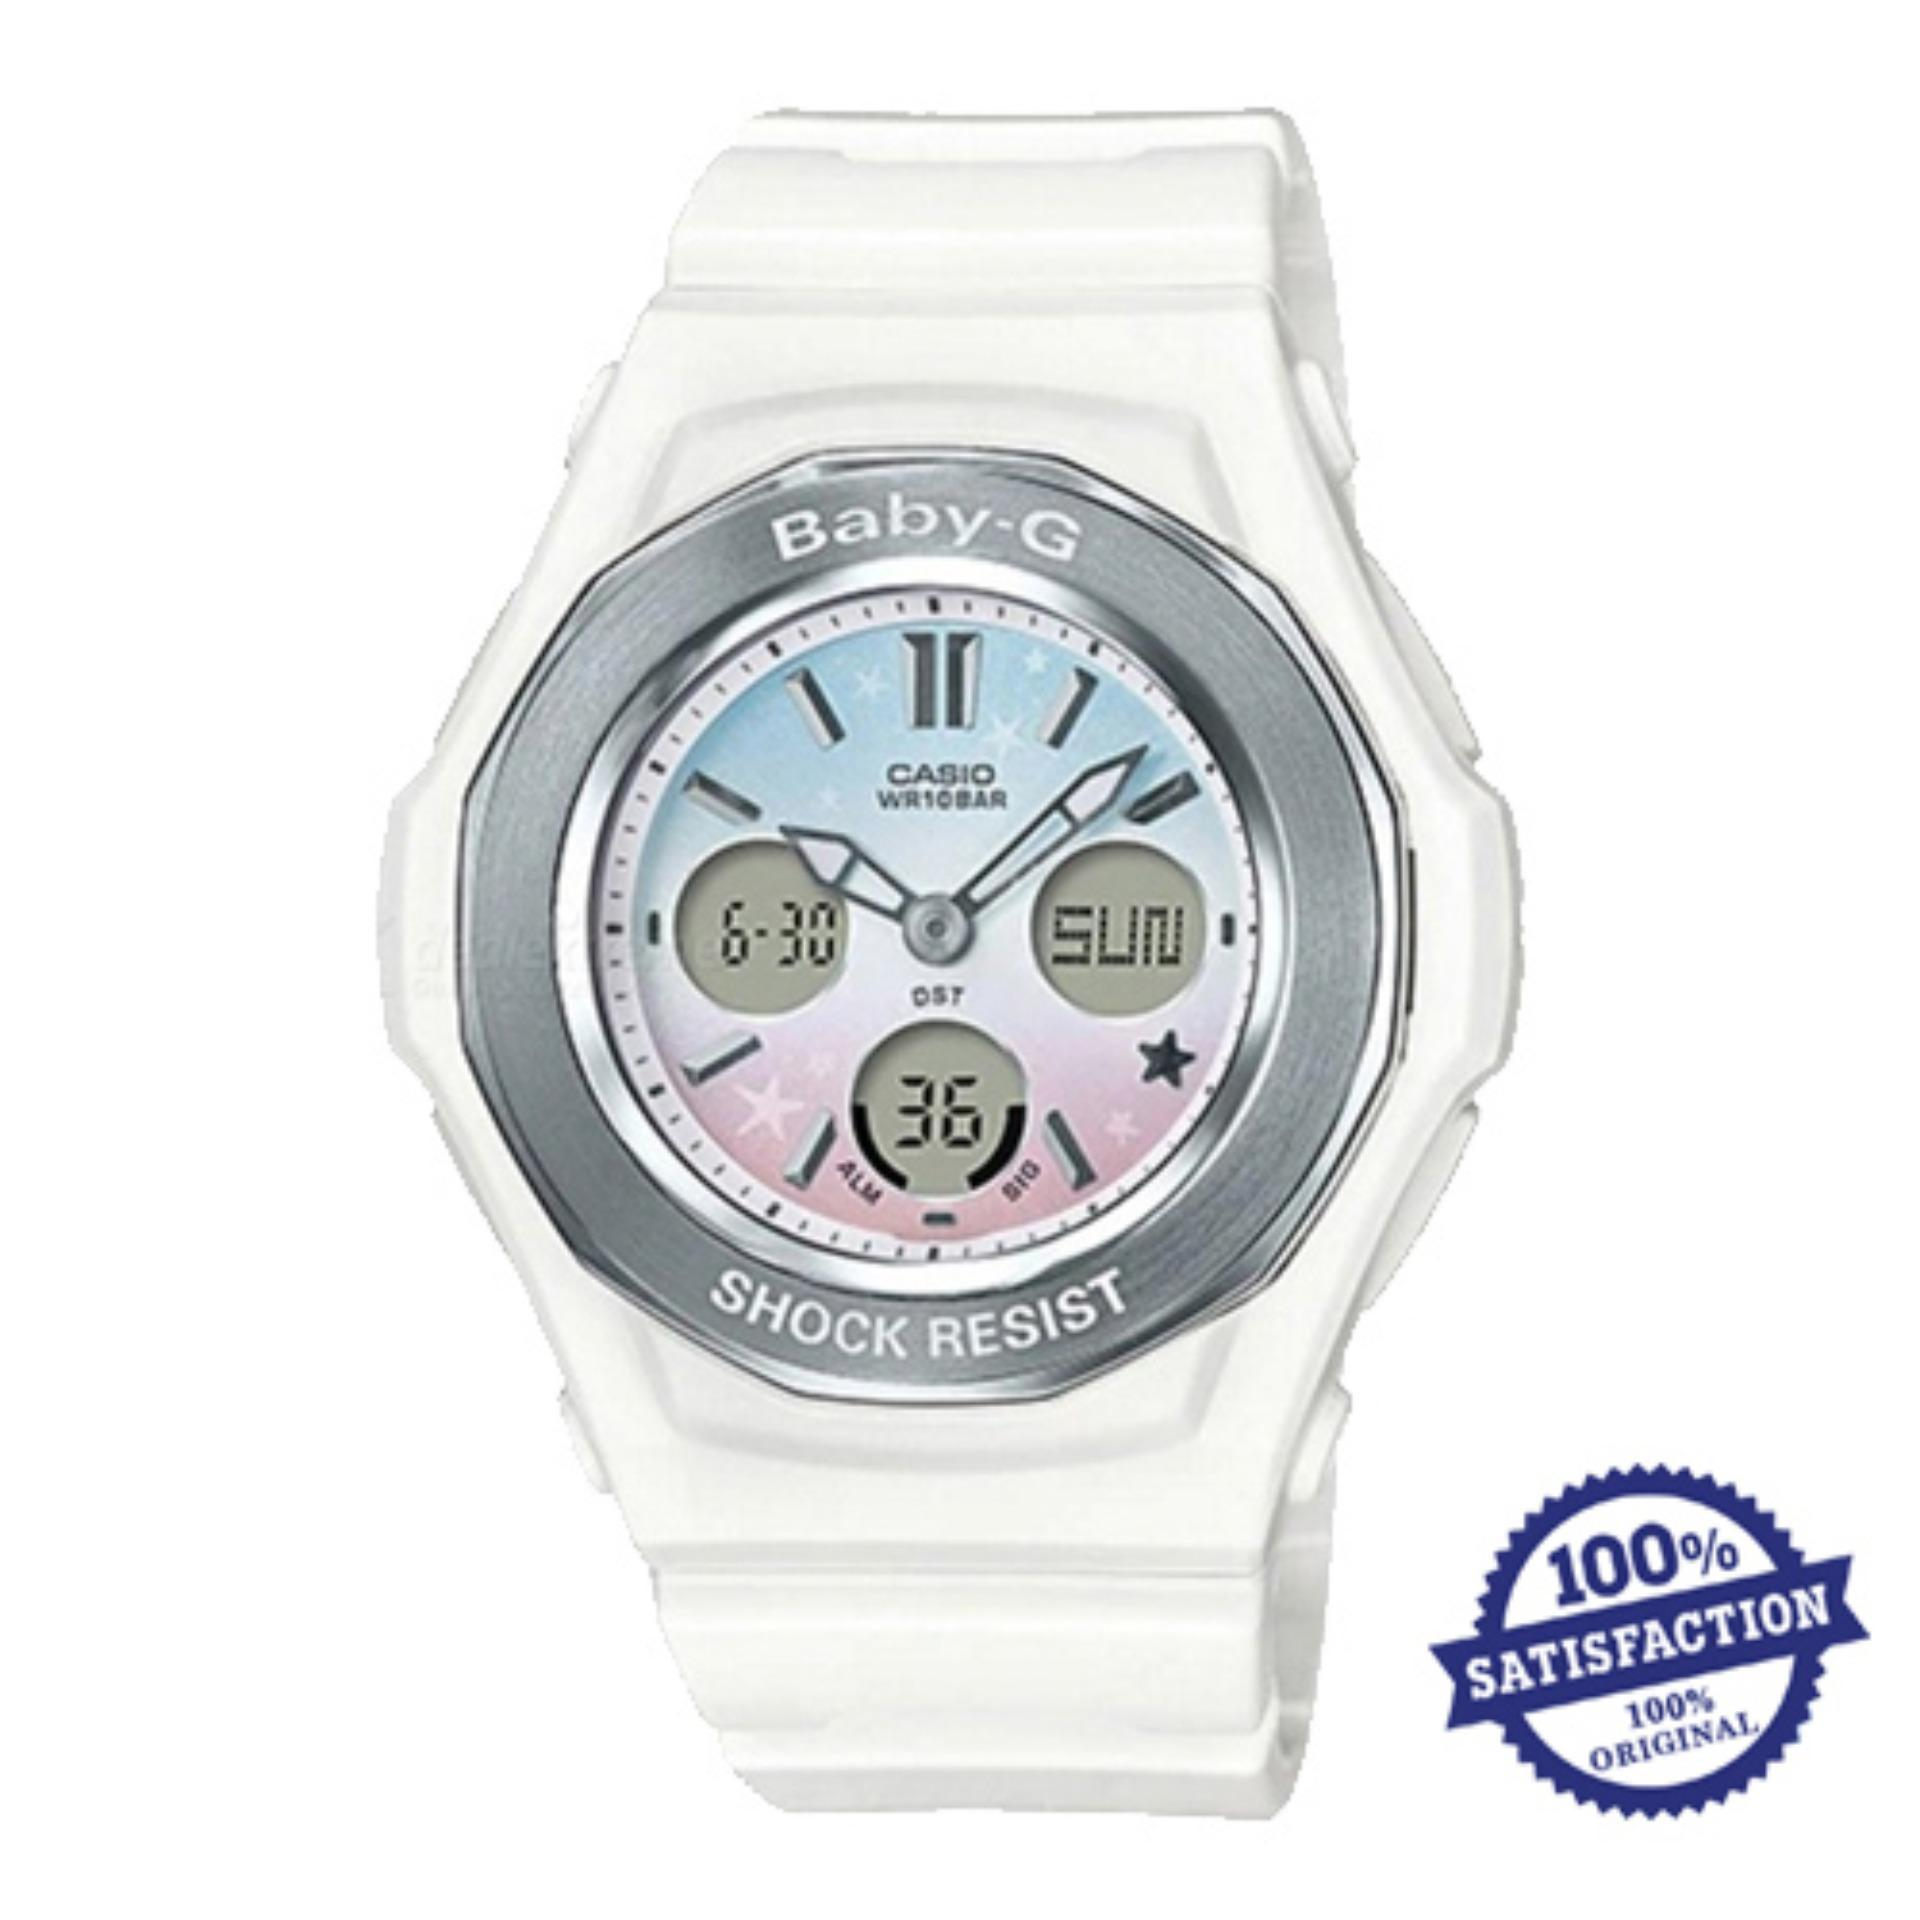 Casio Baby G Philippines Watches For Sale Prices Babyg Bg 169r 4bdr Bga 100st 7a